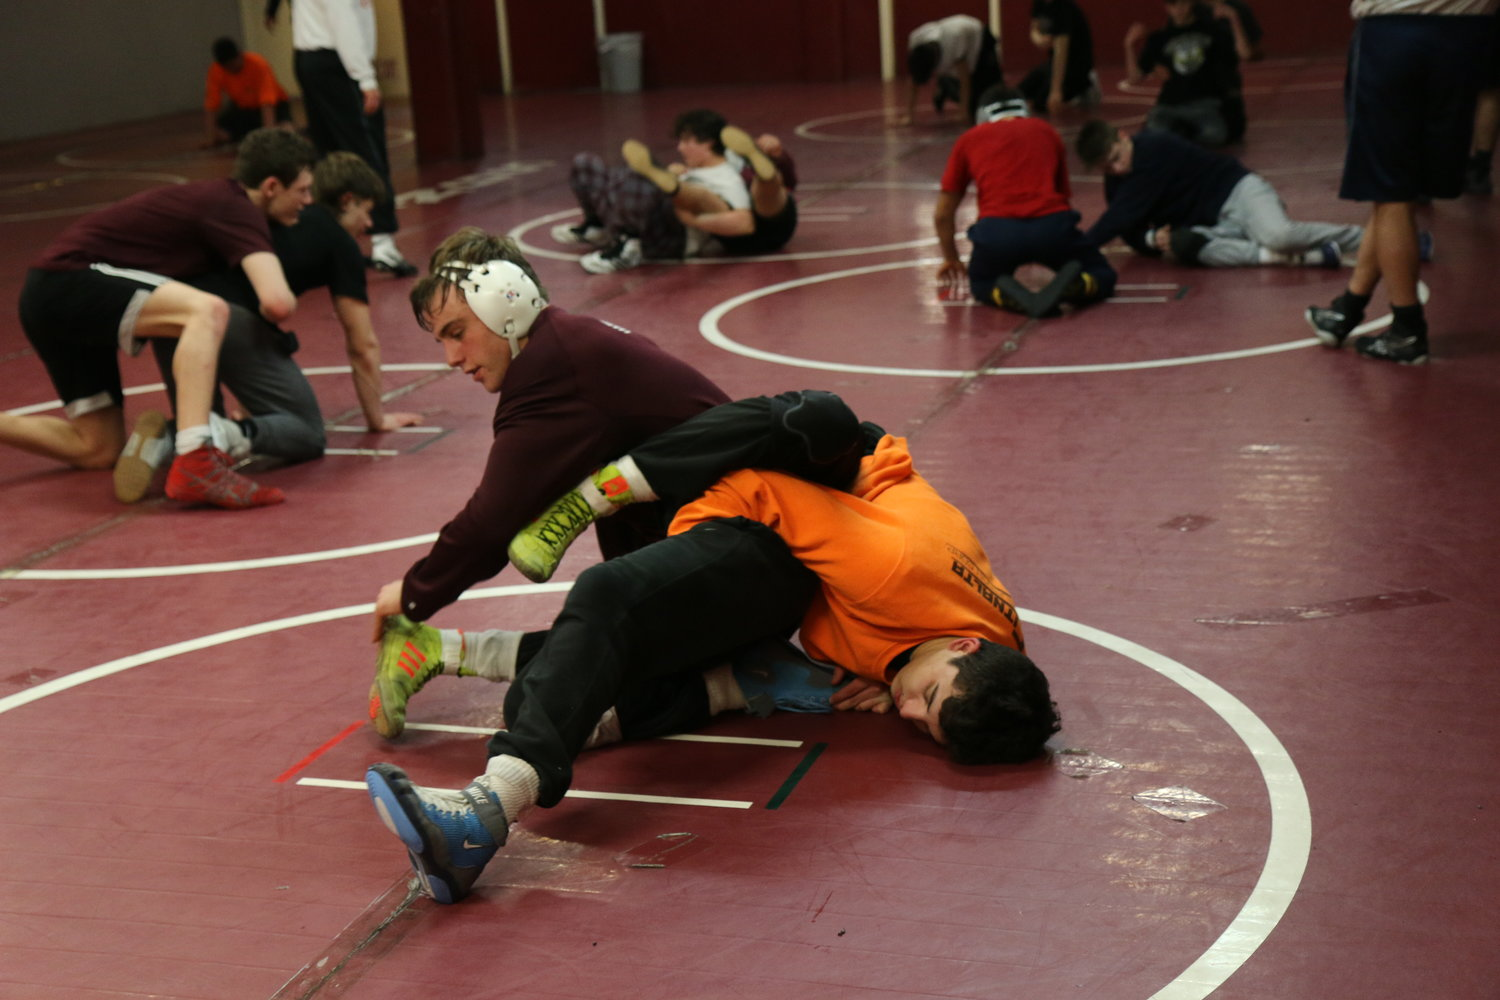 Steven Grabher wrestles with his teammate, Chris Milo.